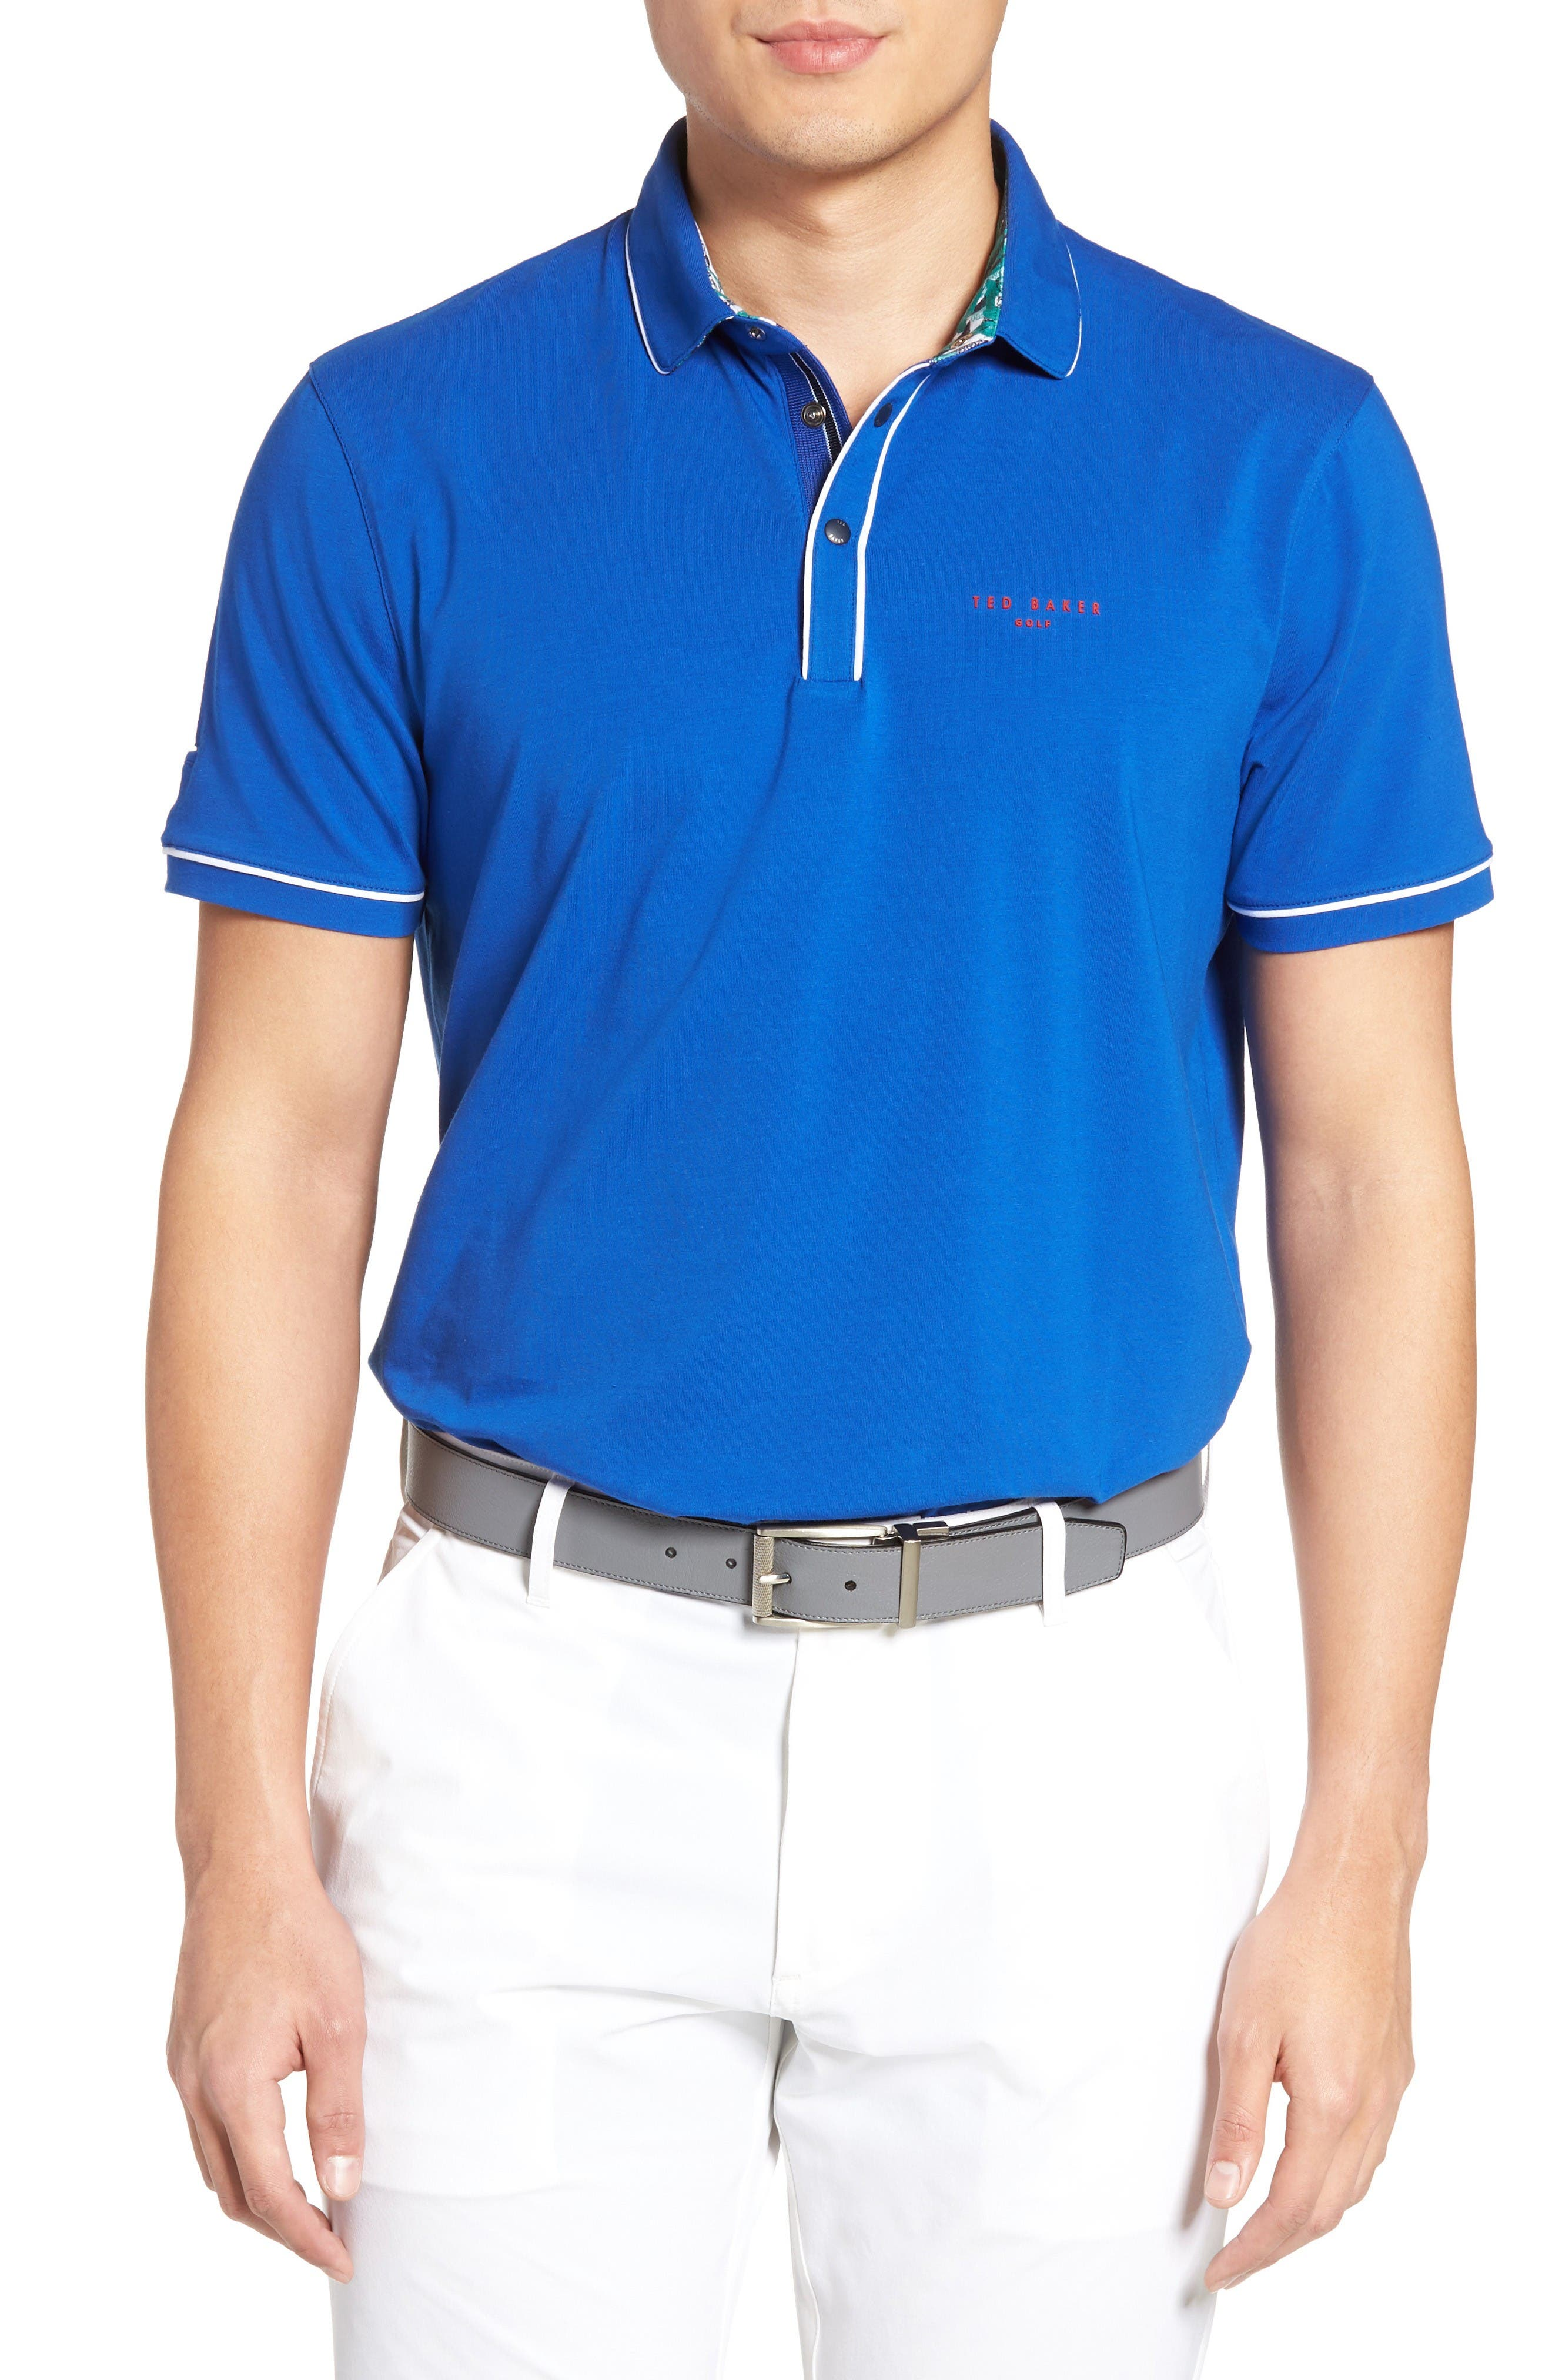 Alternate Image 1 Selected - Ted Baker London Playgo Piped Trim Golf Polo